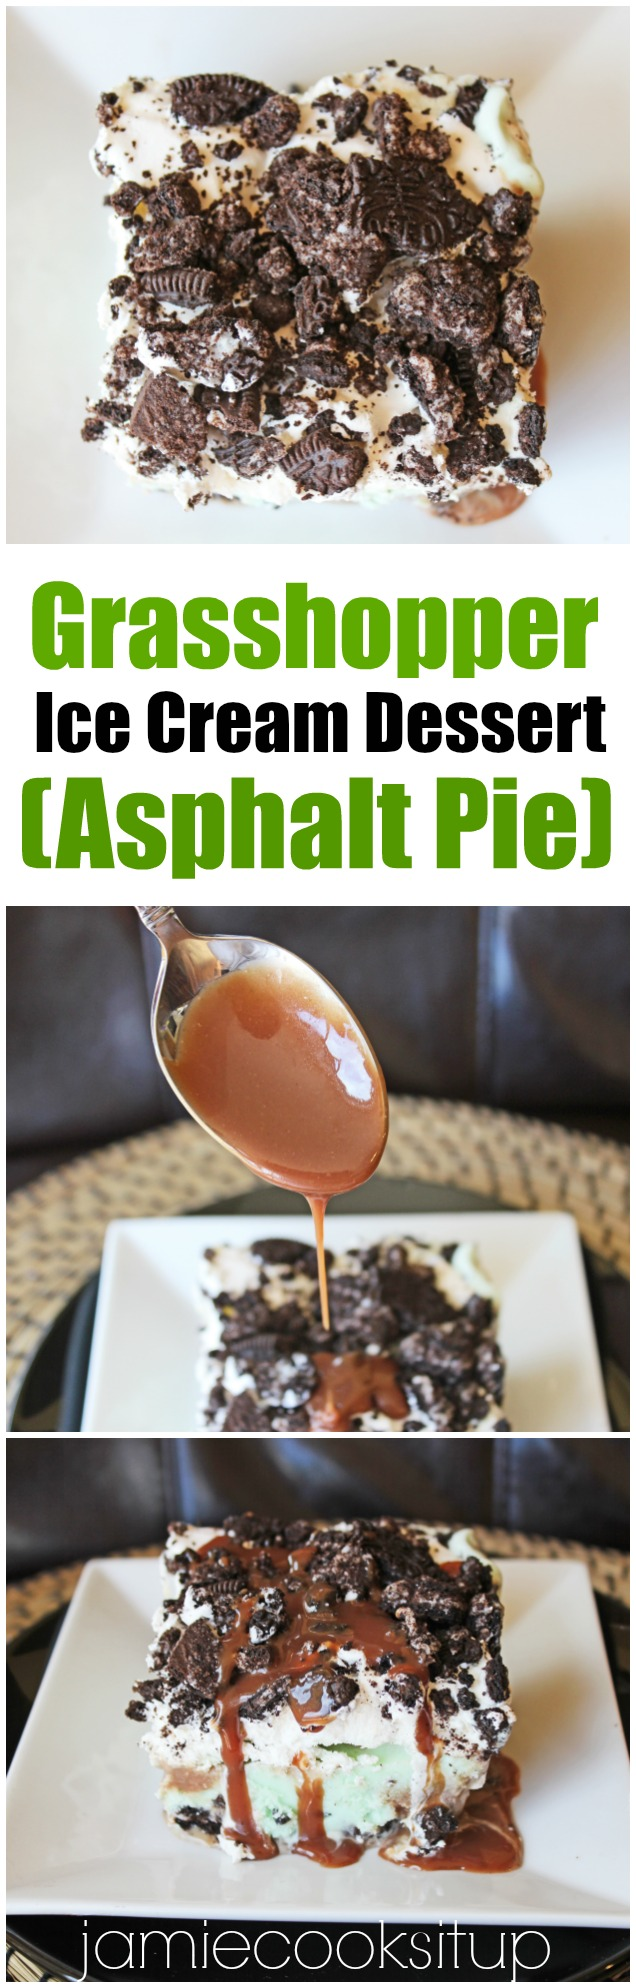 Grasshopper Ice Cream Dessert (Asphalt Pie) from Jamie Cooks It Up!